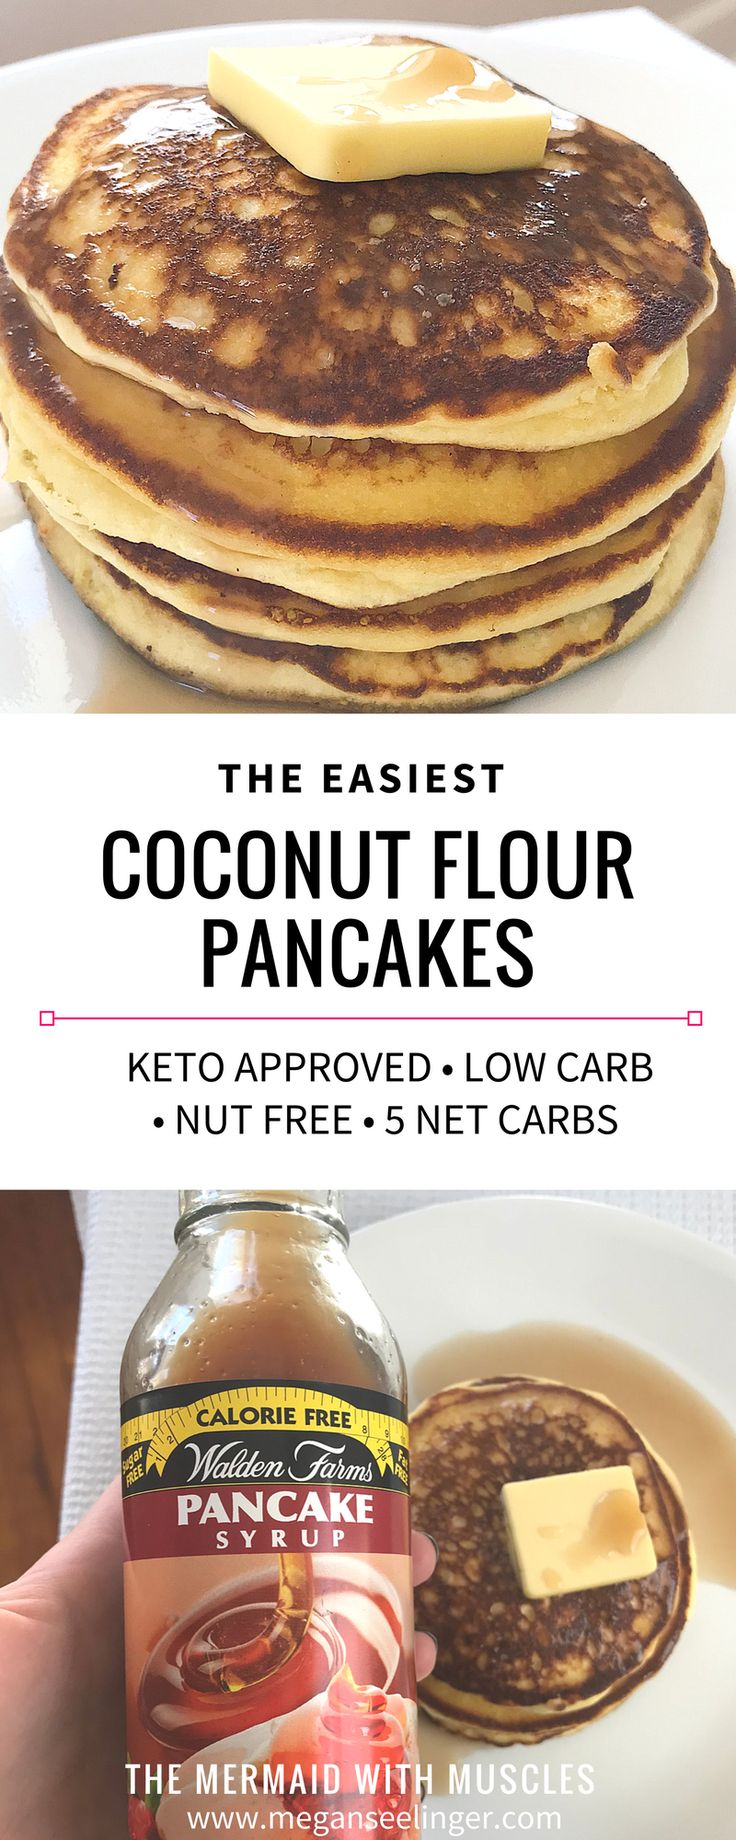 A big stack of warm keto pancakes with extra butter and maple syrup on top! This easy recipe makes fluffy coconut flour pancakes that are low carb, few ingredients and can fit into any keto meal plan! These are made with coconut flour, instead of almond flour, so they are nut free! The perfect keto breakfast recipe.